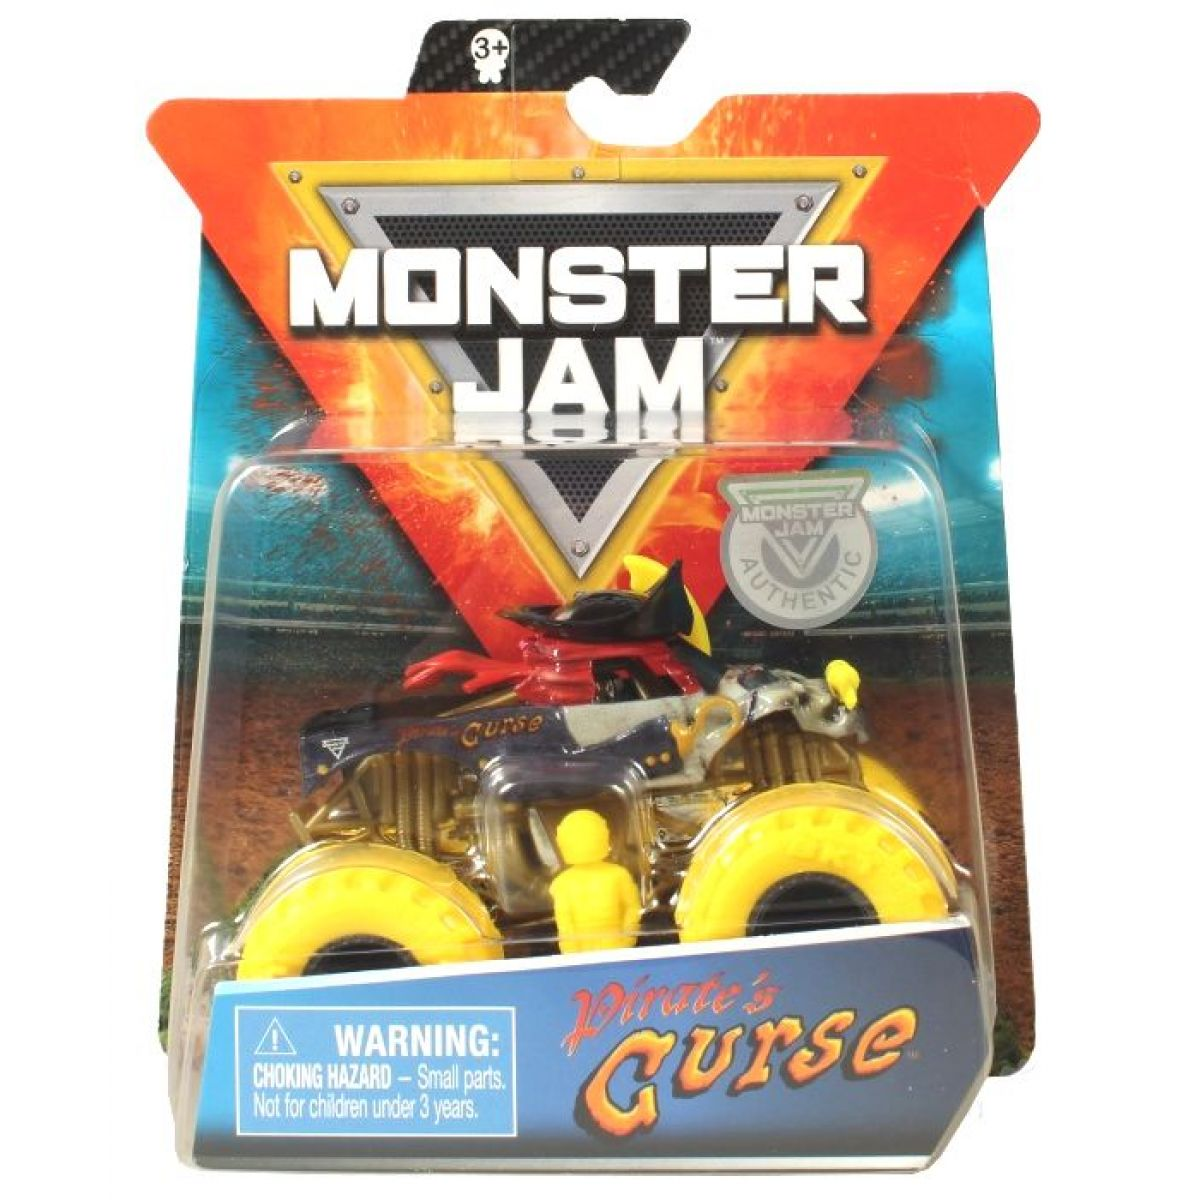 Monster Jam Sběratelská Die-Cast auta 1:64 Pirates Curse